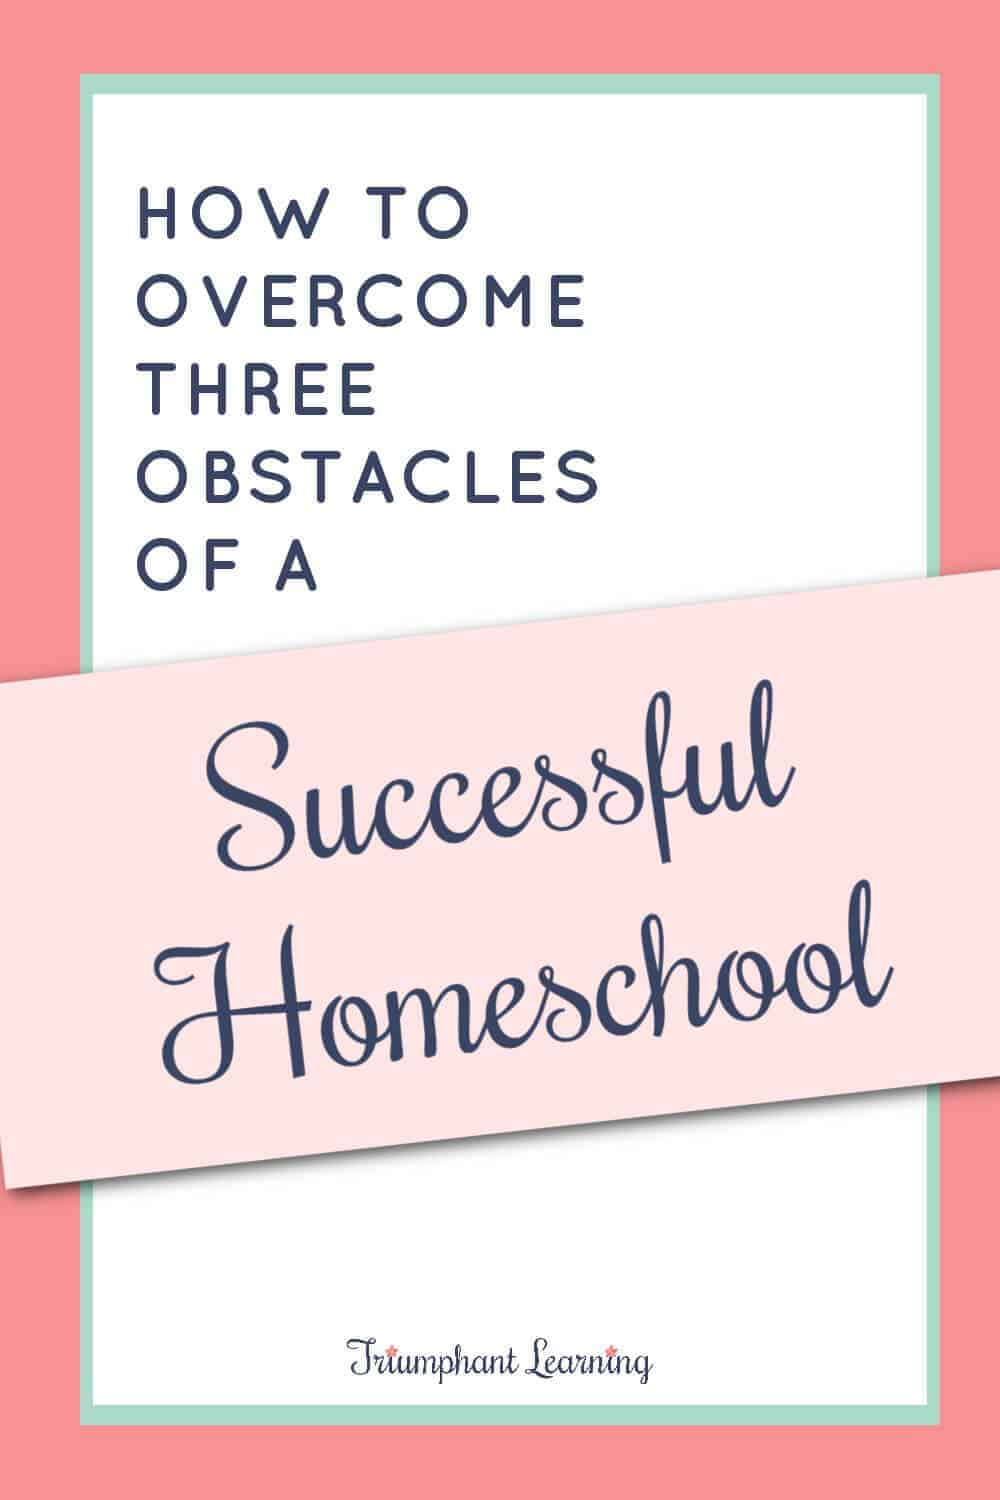 These strategies can help you overcome three common roadblocks that prevent many families from having a successful homeschool! via @TriLearning